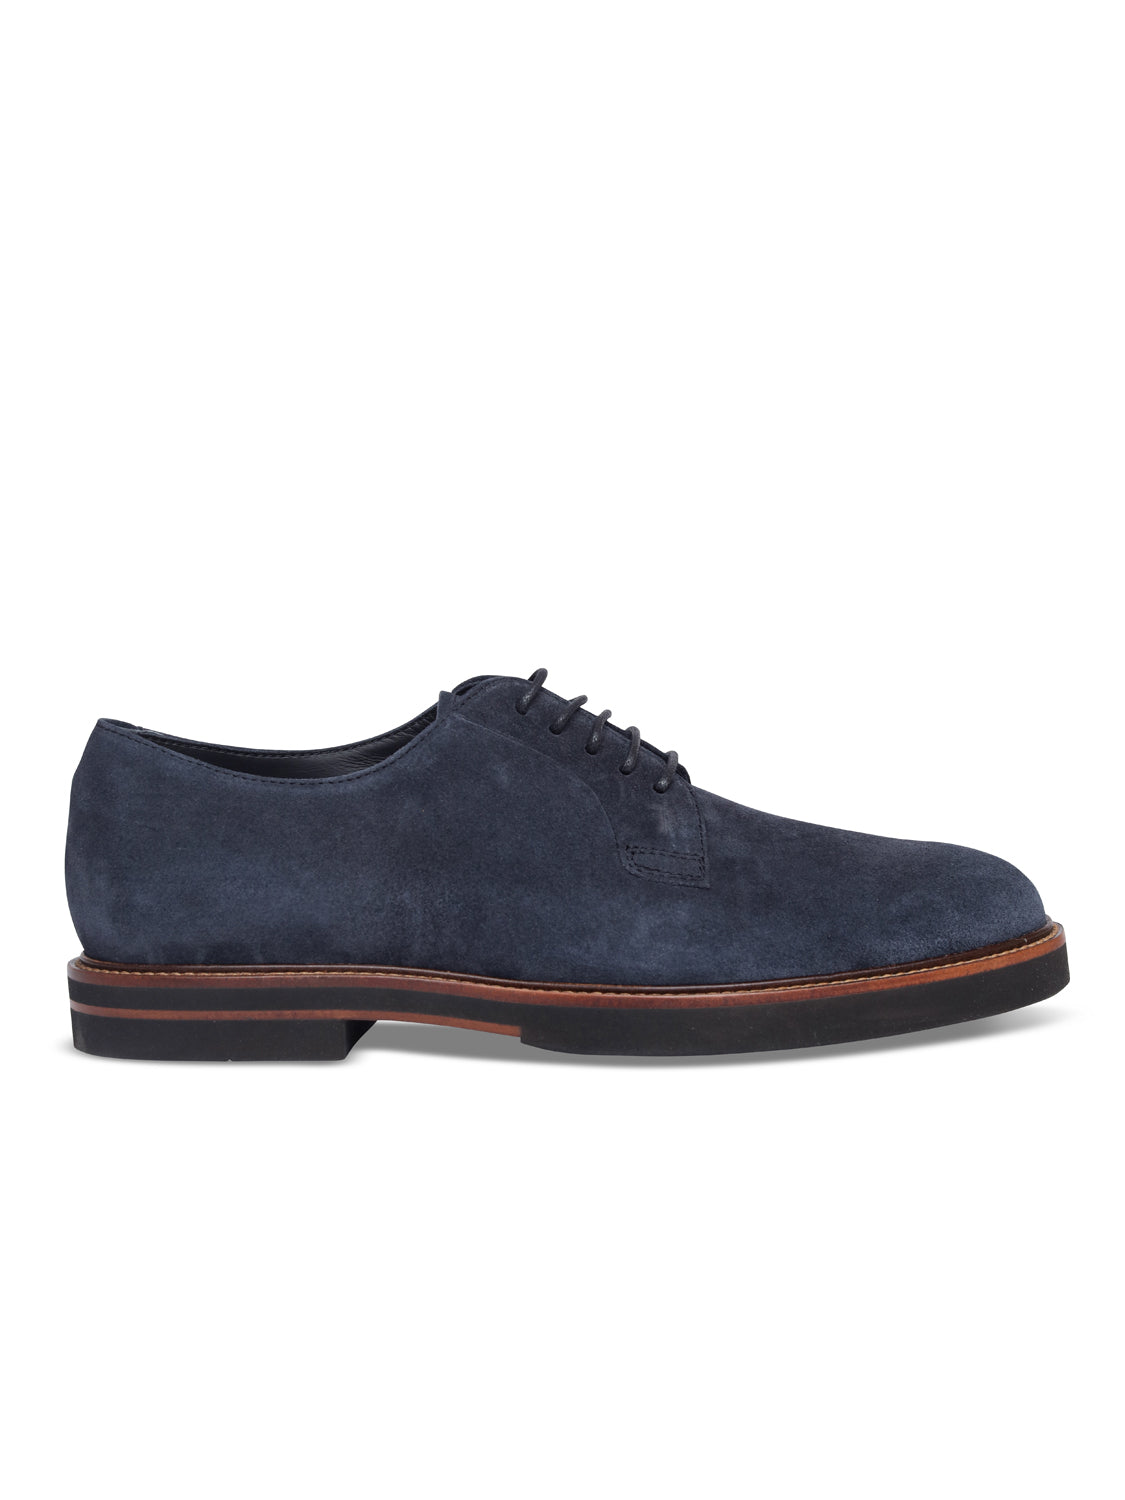 TOD'S Classic Suede Derby (Navy) - Union 22